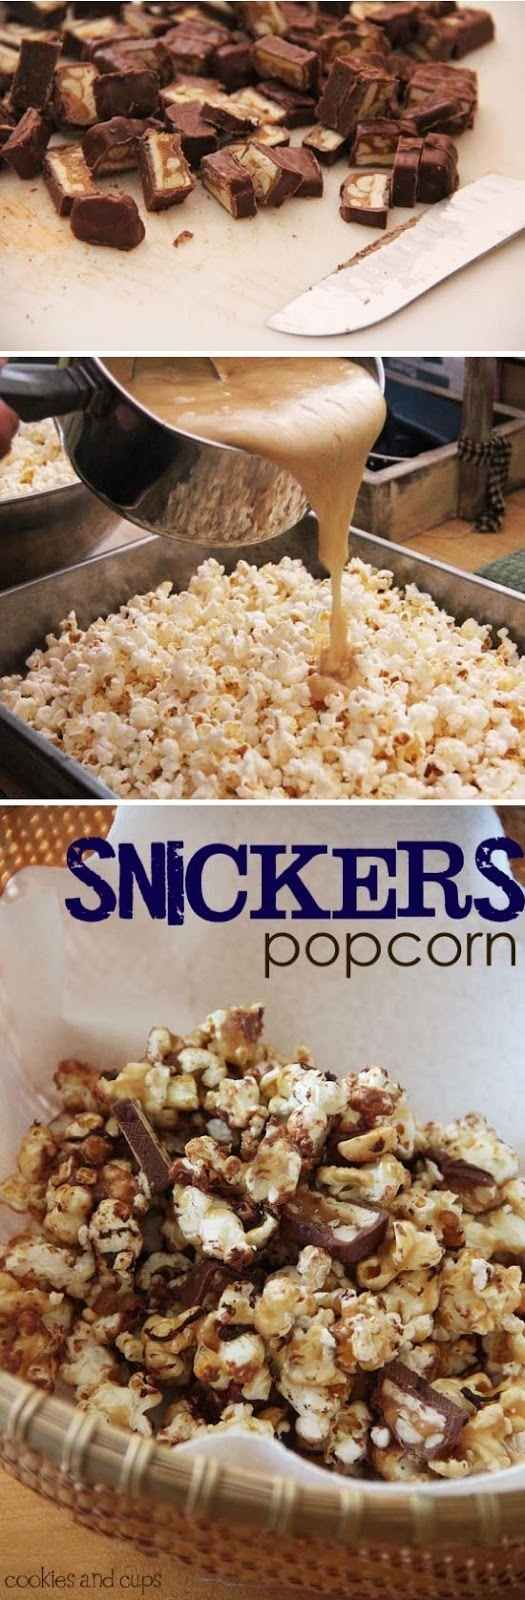 Snickers Popcorn this would be good for a gift in a jar or a stocking stuffer